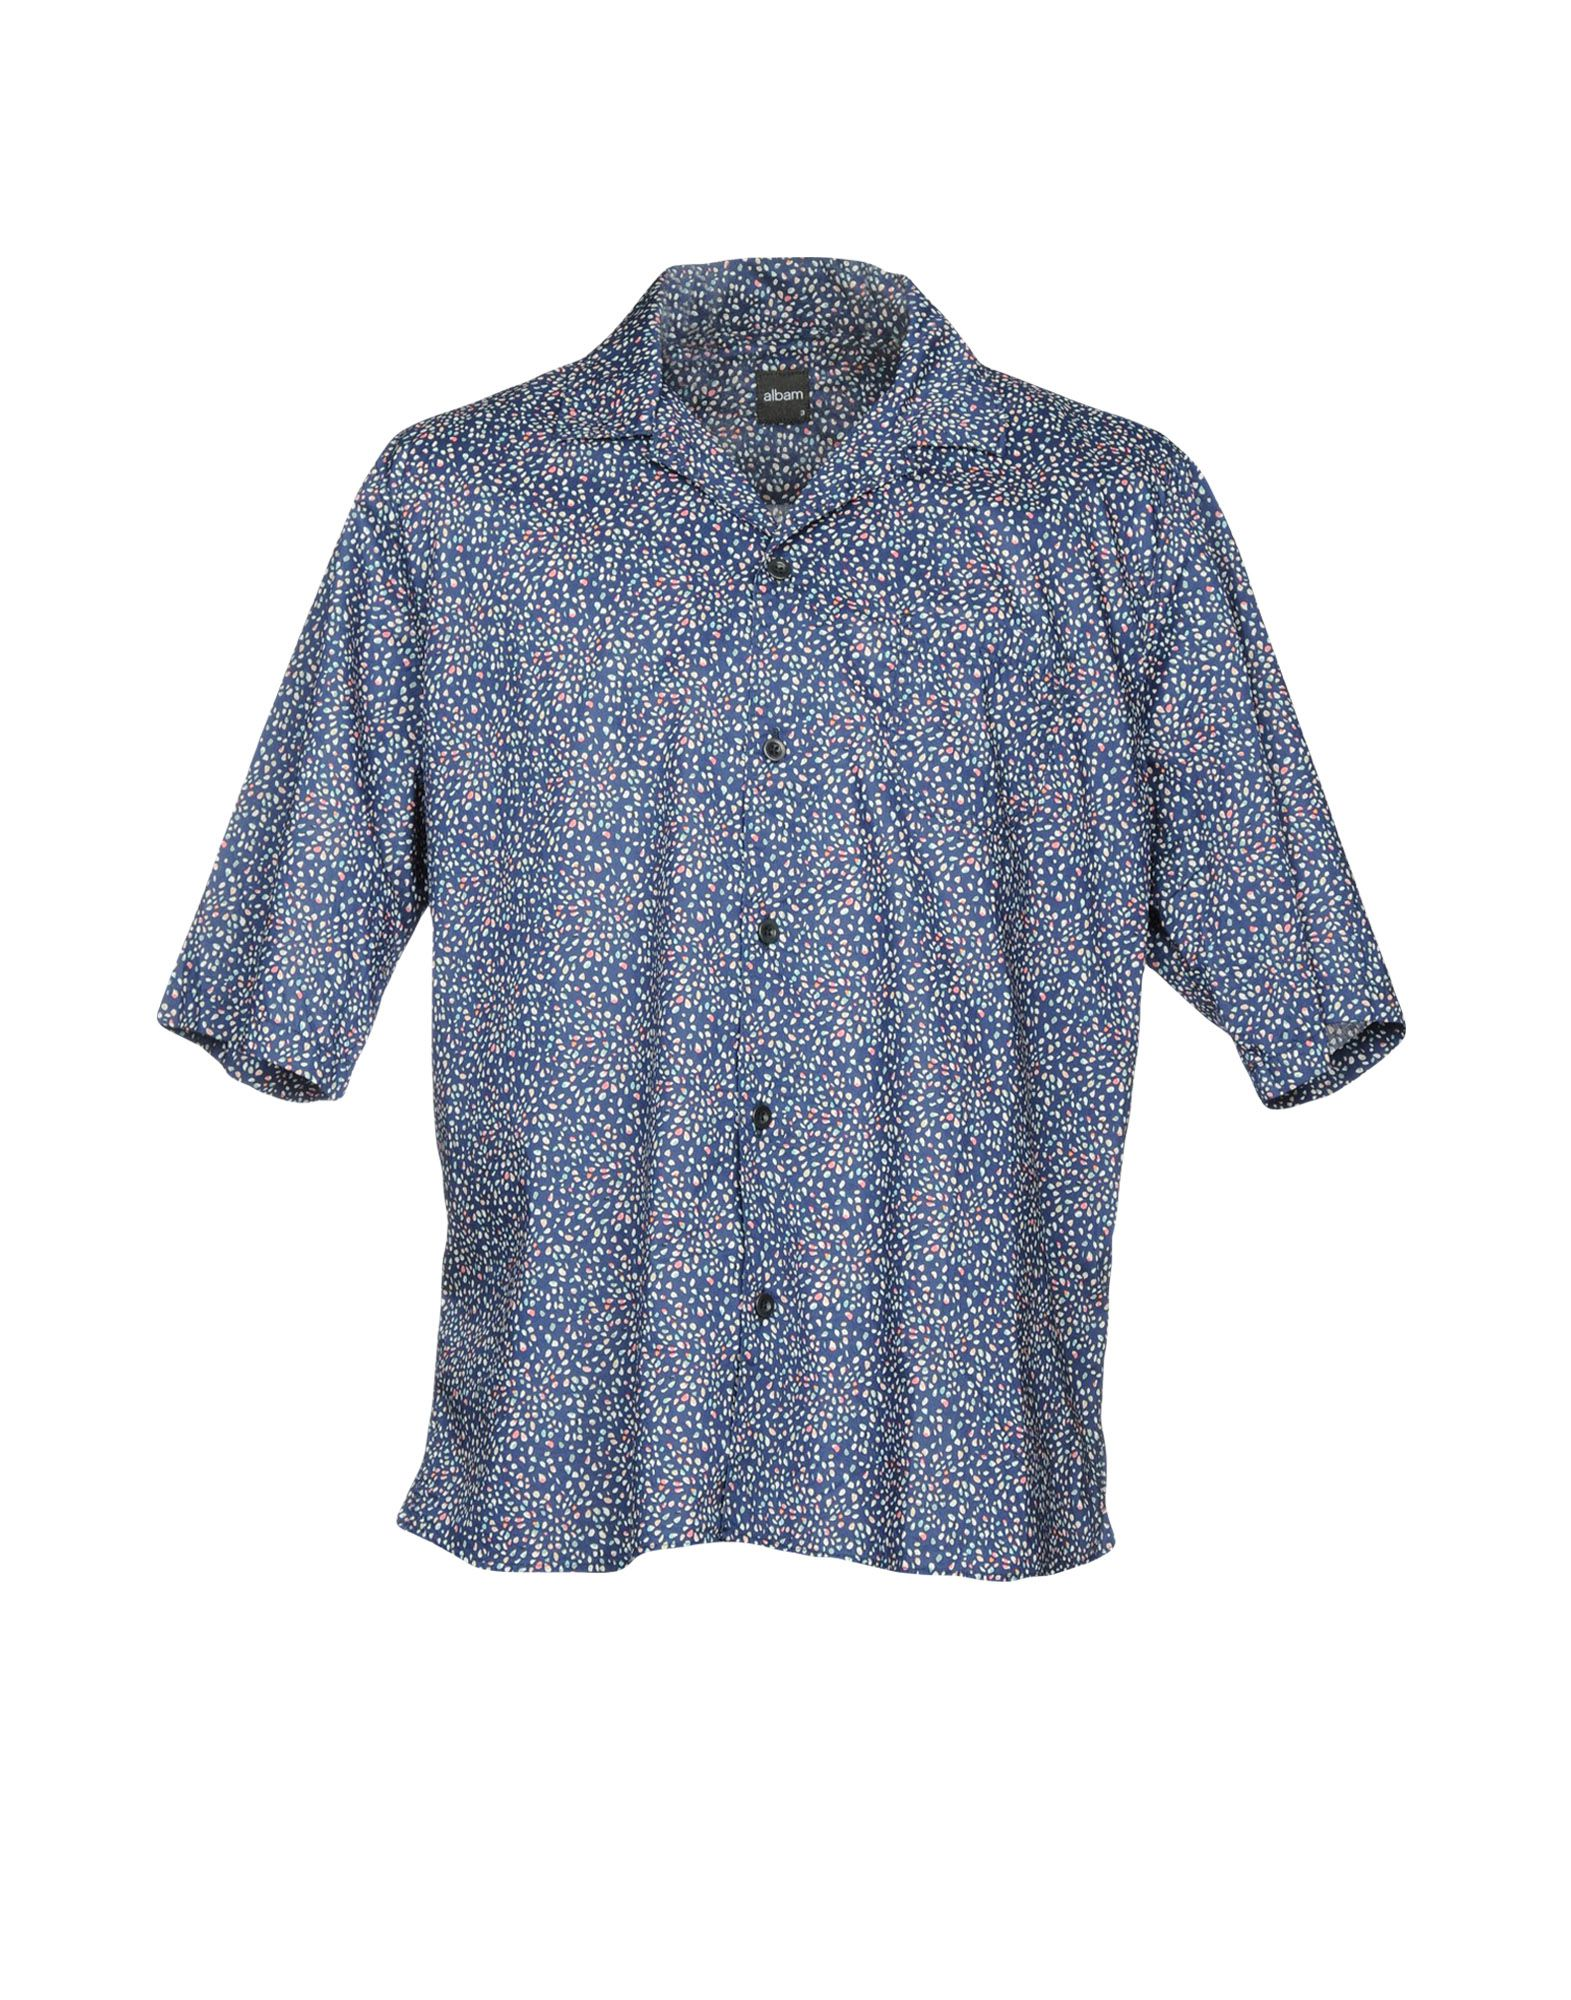 ALBAM Patterned Shirt in Dark Blue